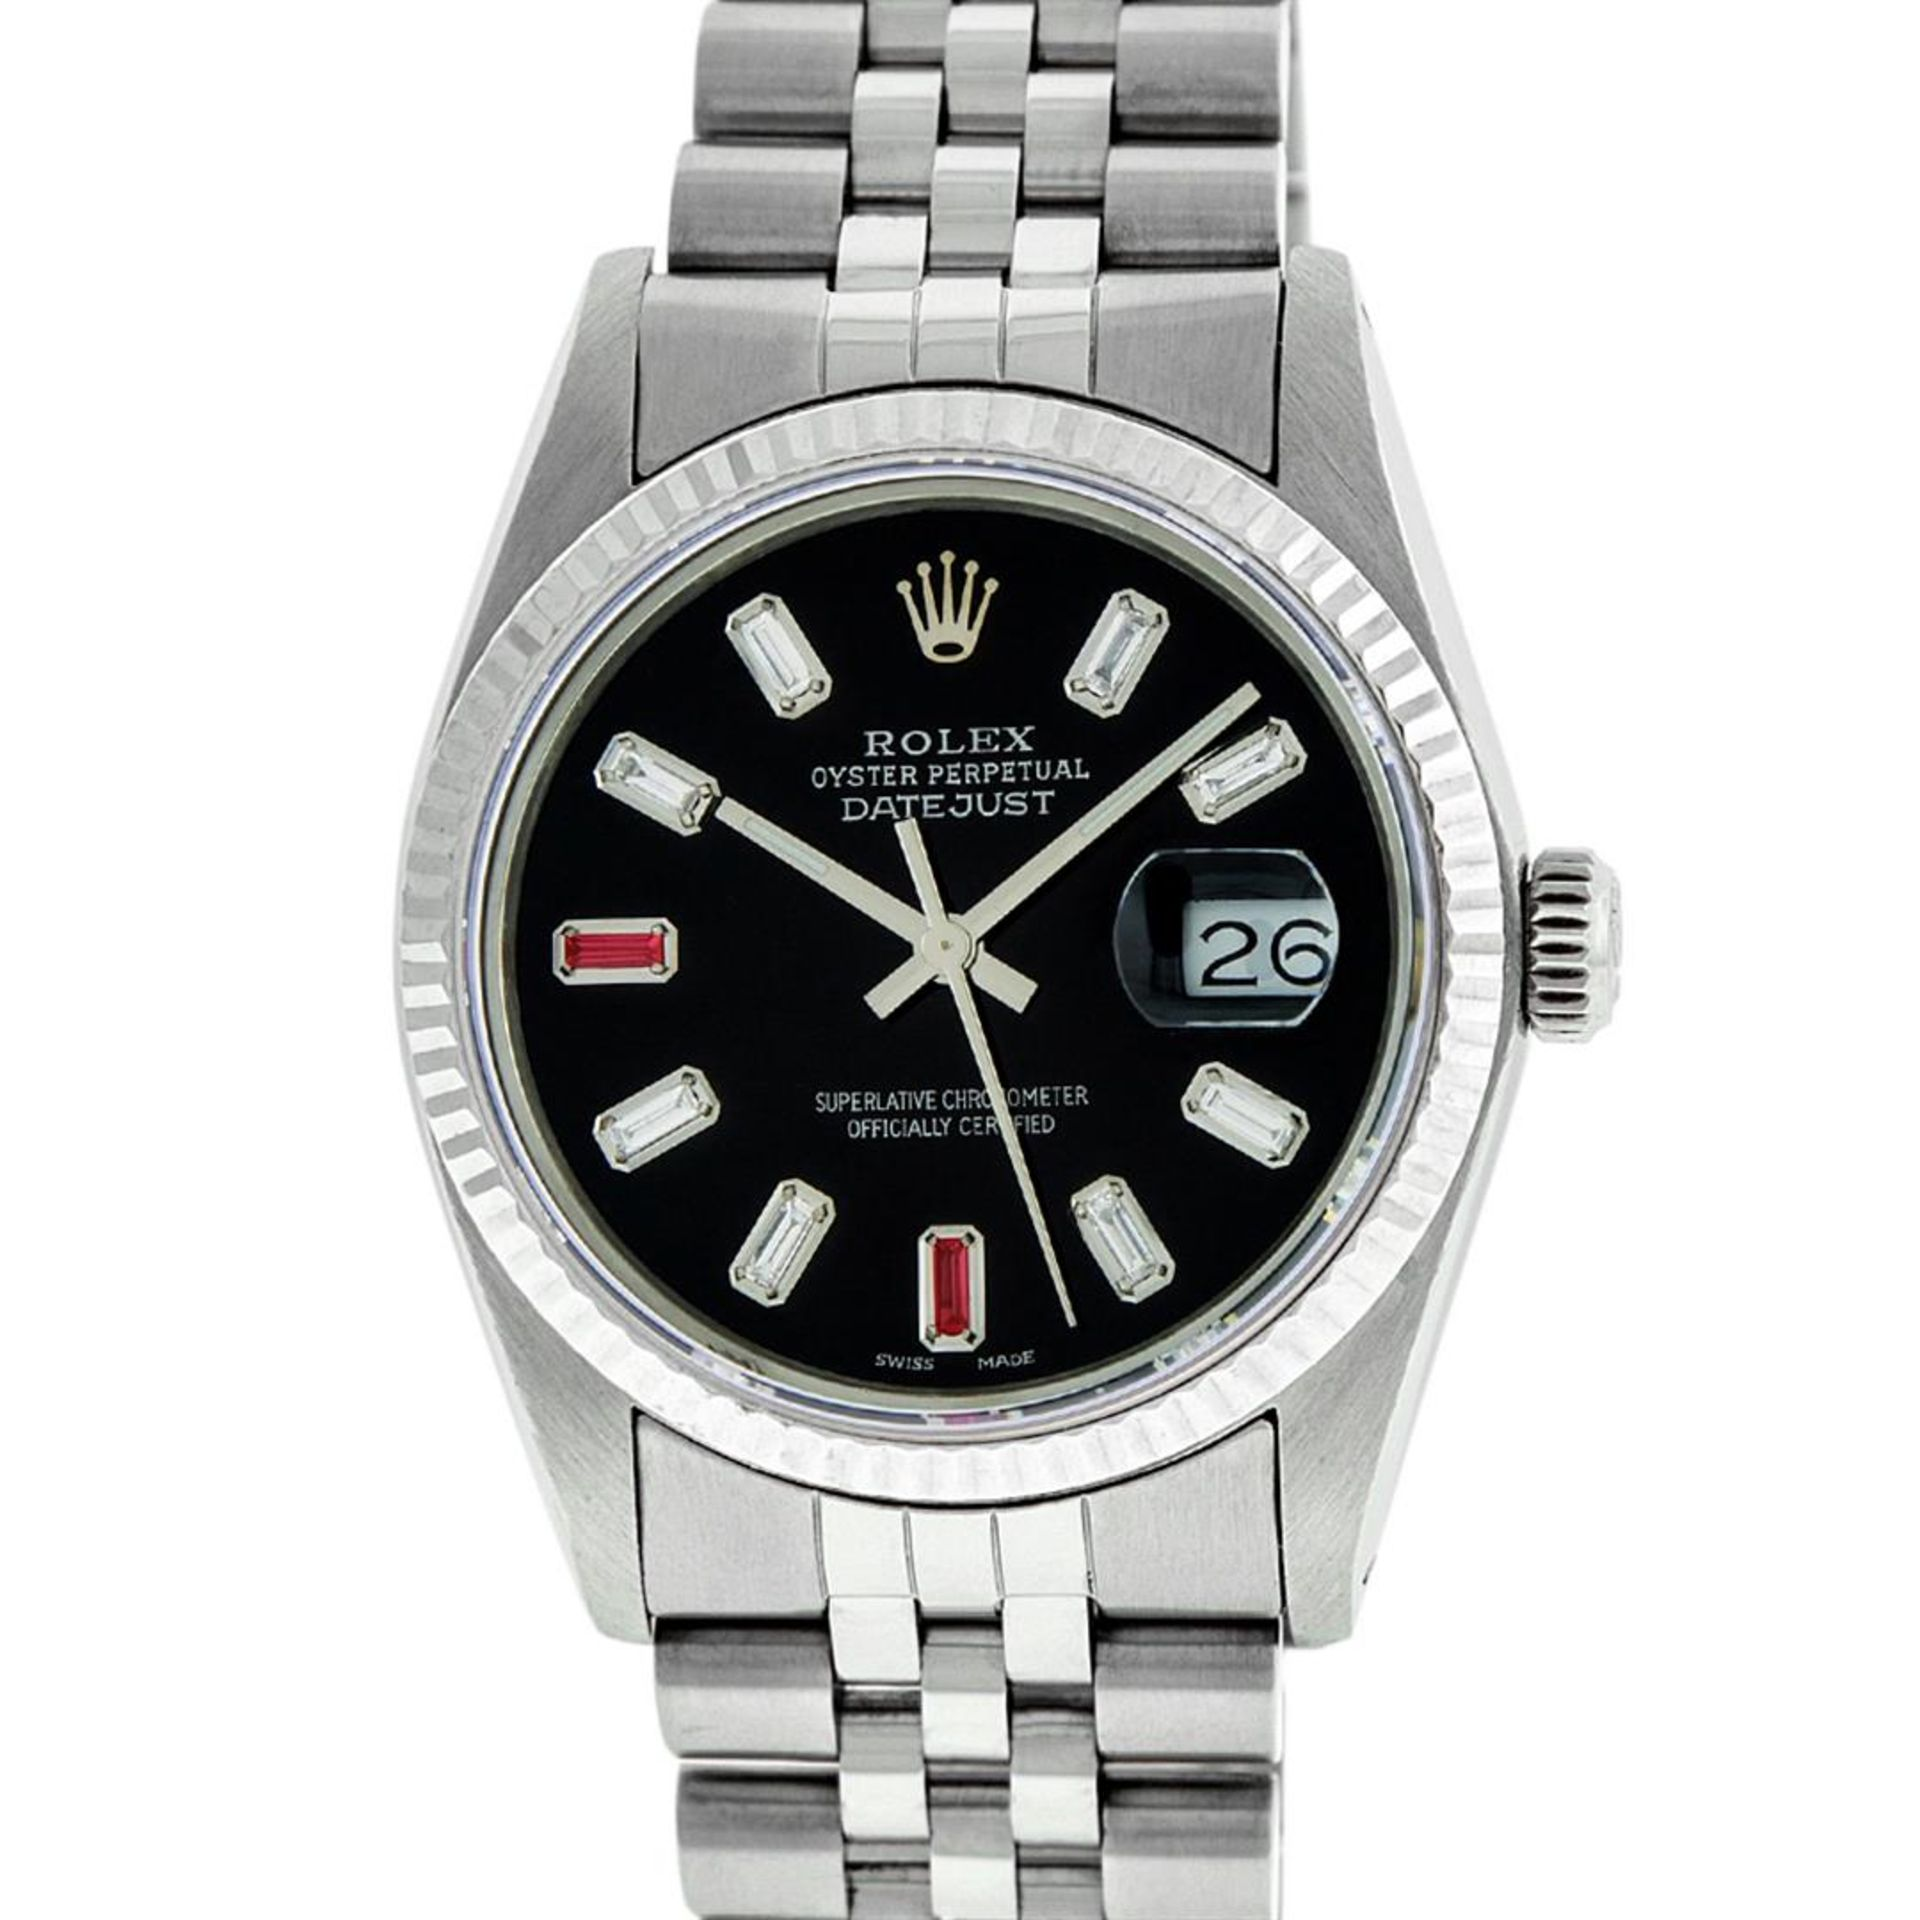 Rolex Mens Stainless Steel 36mm Black Diamond Dial Datejust Wristwatch - Image 2 of 9